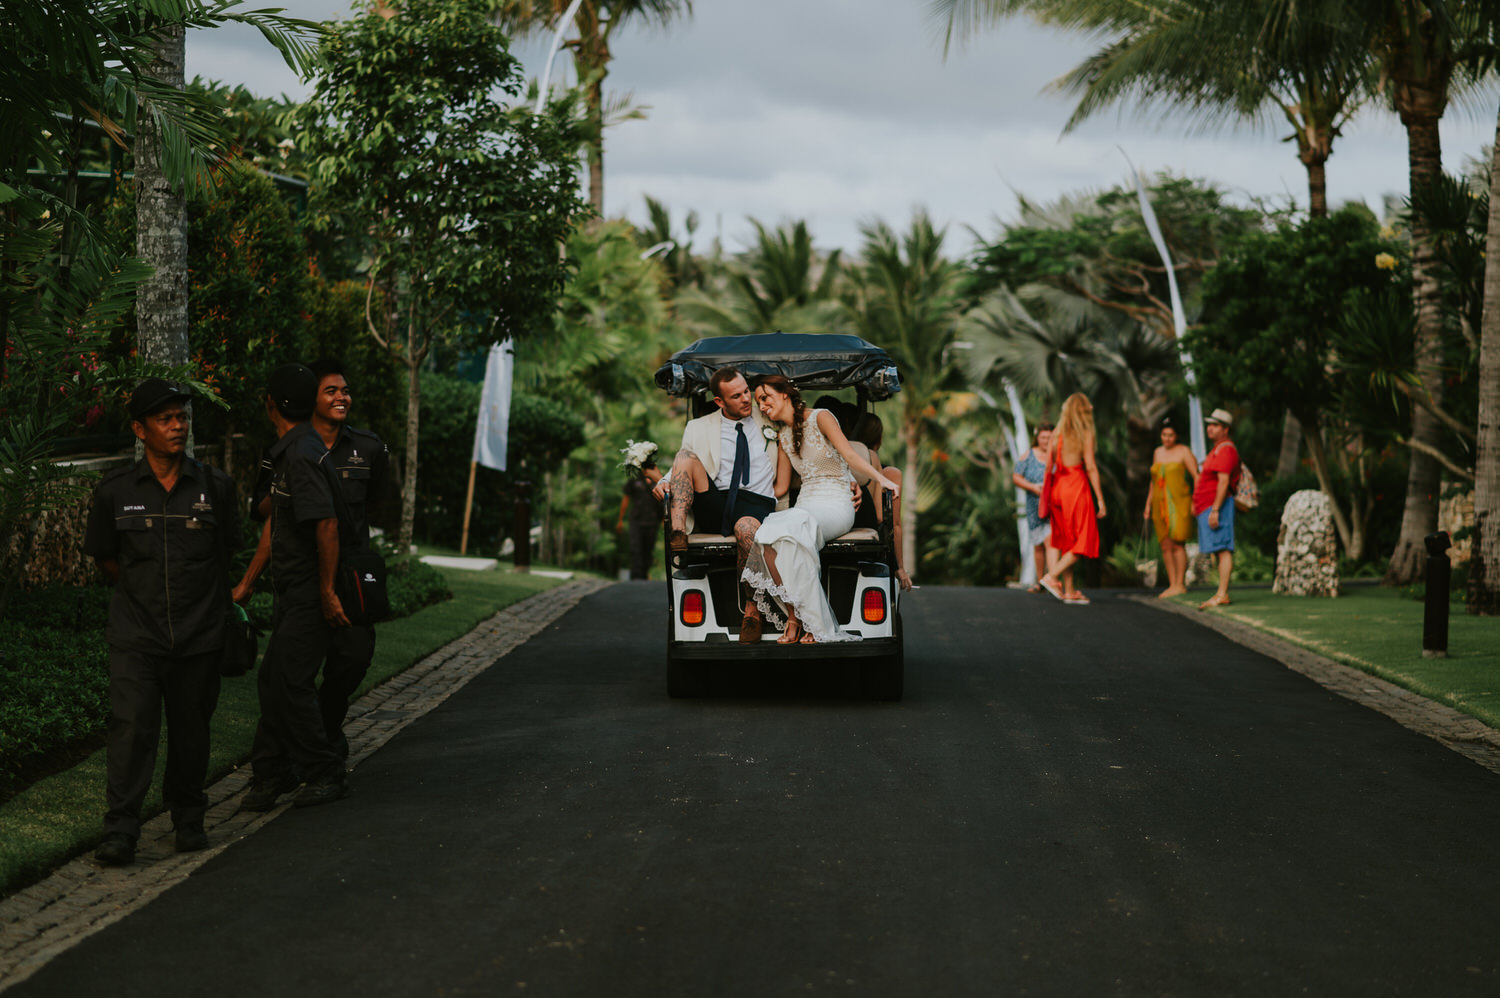 bali wedding destination - the ungasan wedding - bali wedding photographer - diktatphotography - aimee + blake wedding - 89